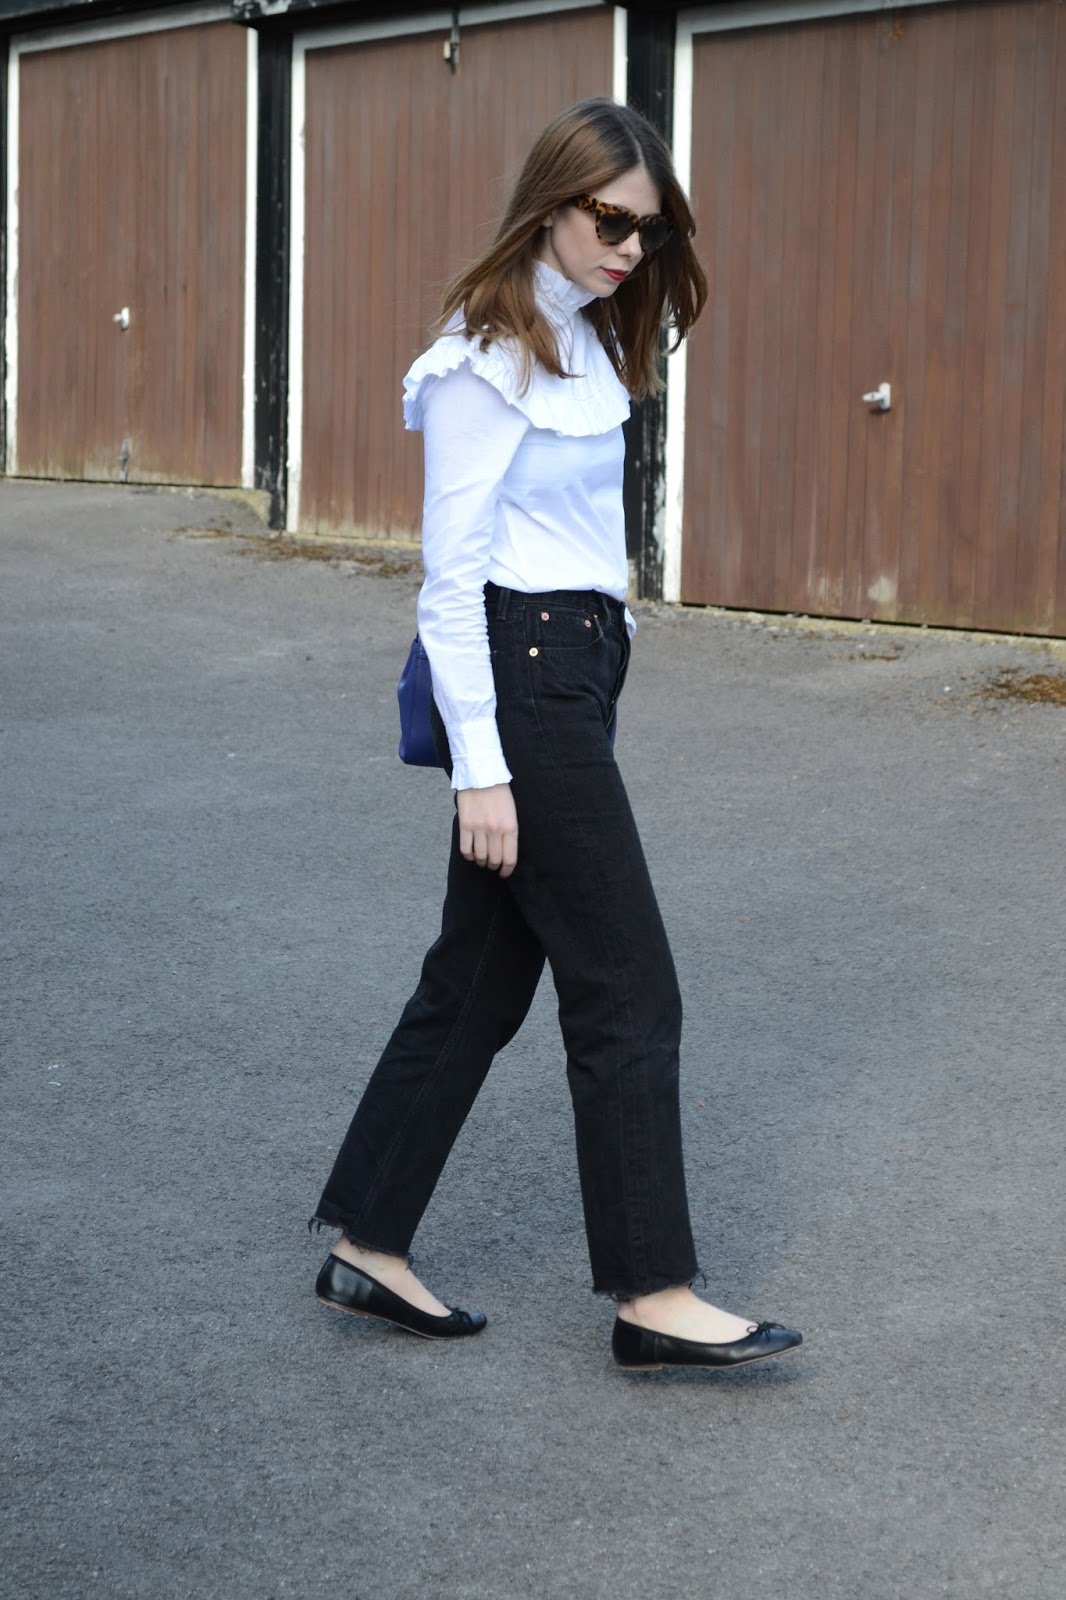 57982bcd White frill shirt from Archive by Alexa Chung for Marks and Spencers, Black  flat ballet